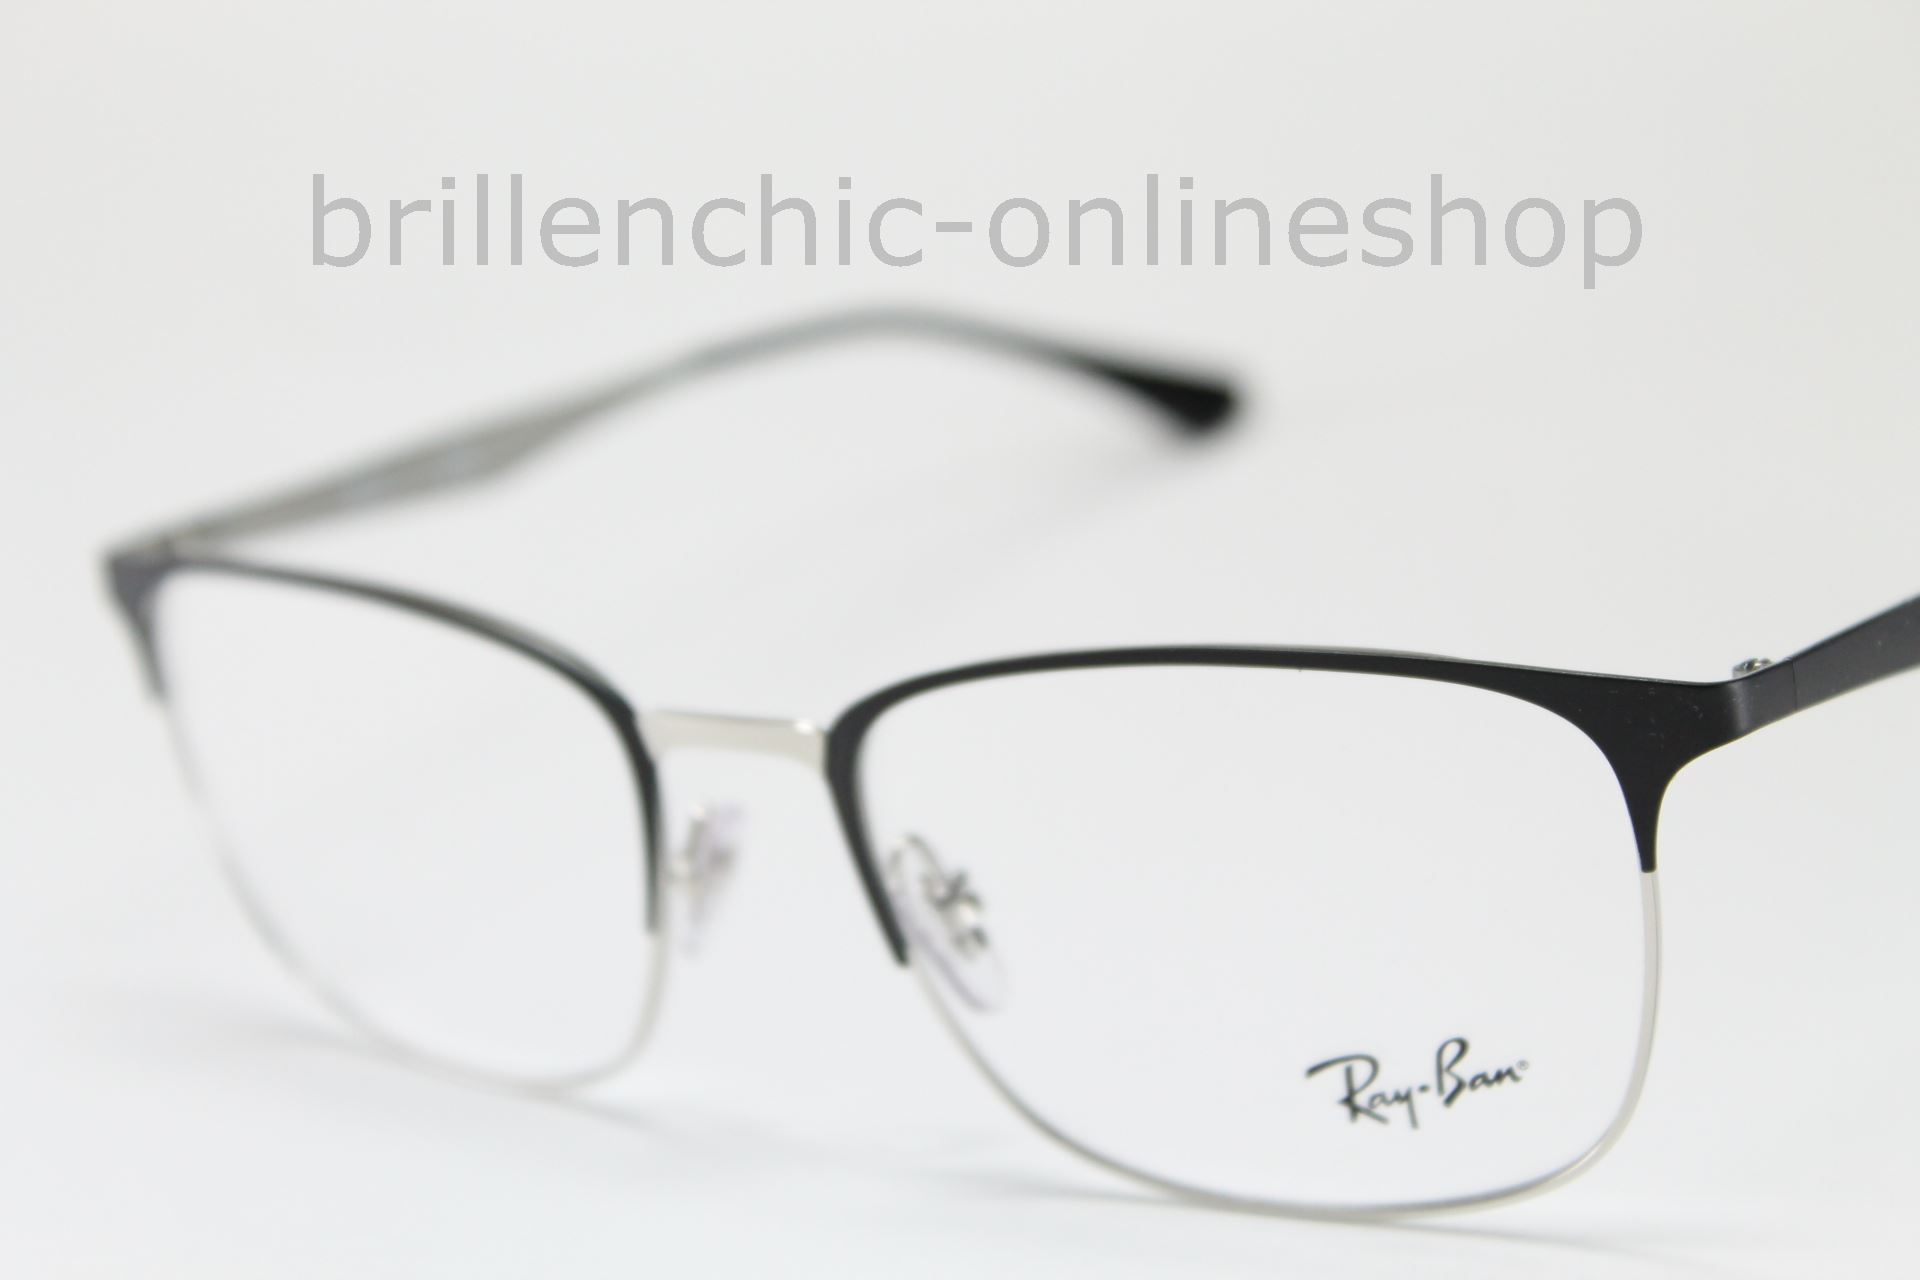 37da6a55e7e Brillenchic-onlineshop in Berlin - Ray Ban RB 6421 2997